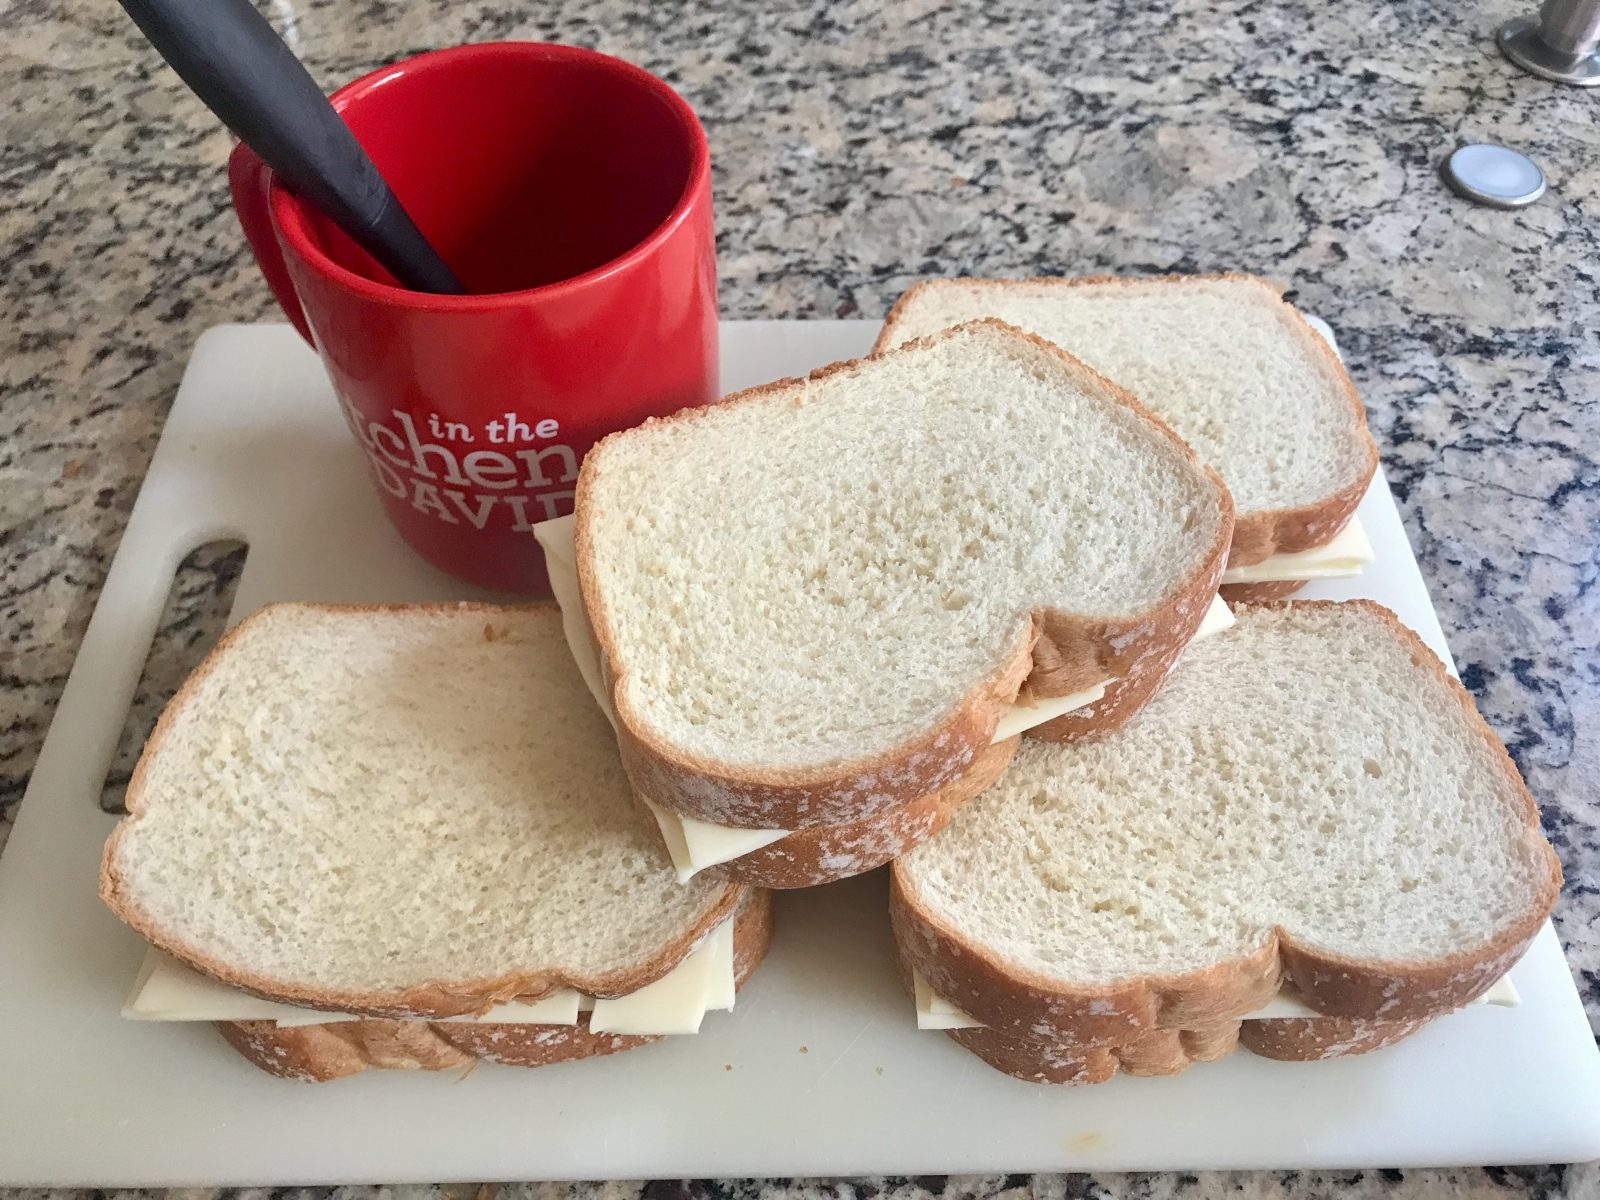 4 uncooked assembled grilled cheese sandwiches with melted butter for brushing in a red mug